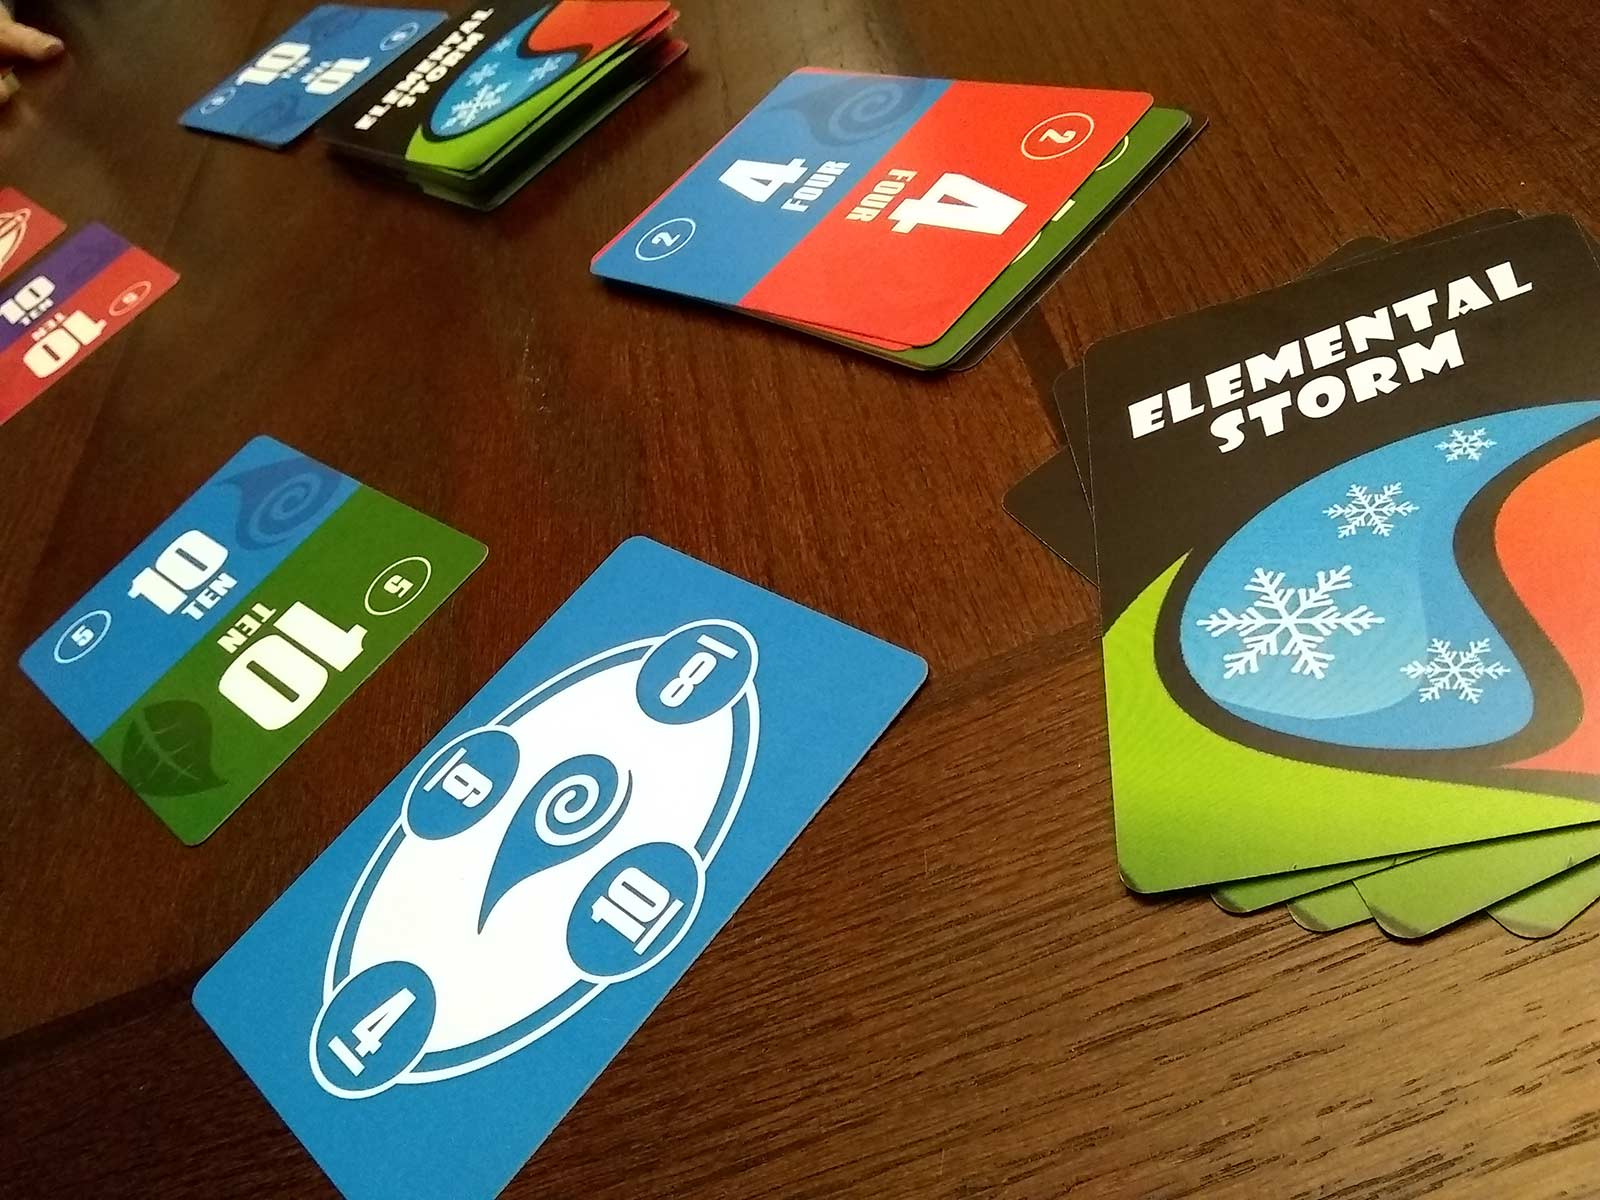 elemental storm card game playtesting